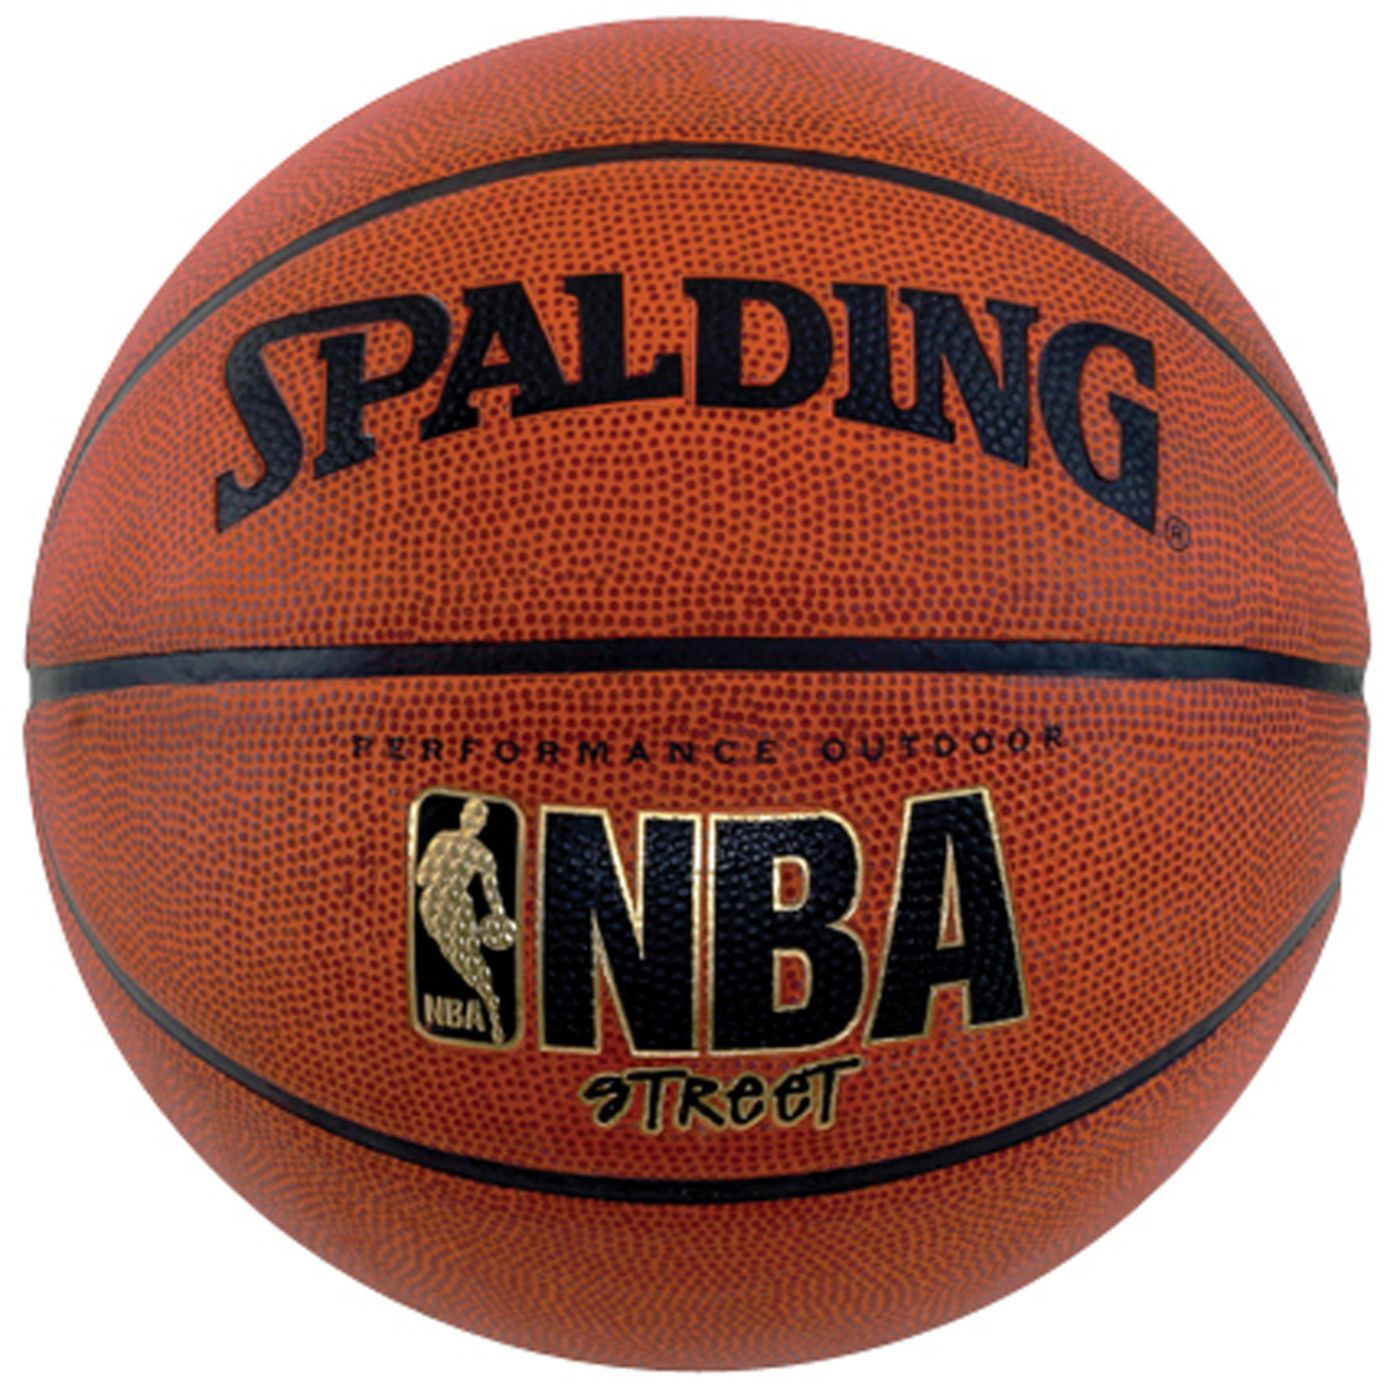 "Spalding NBA Street Official Basketball (29.5"")"